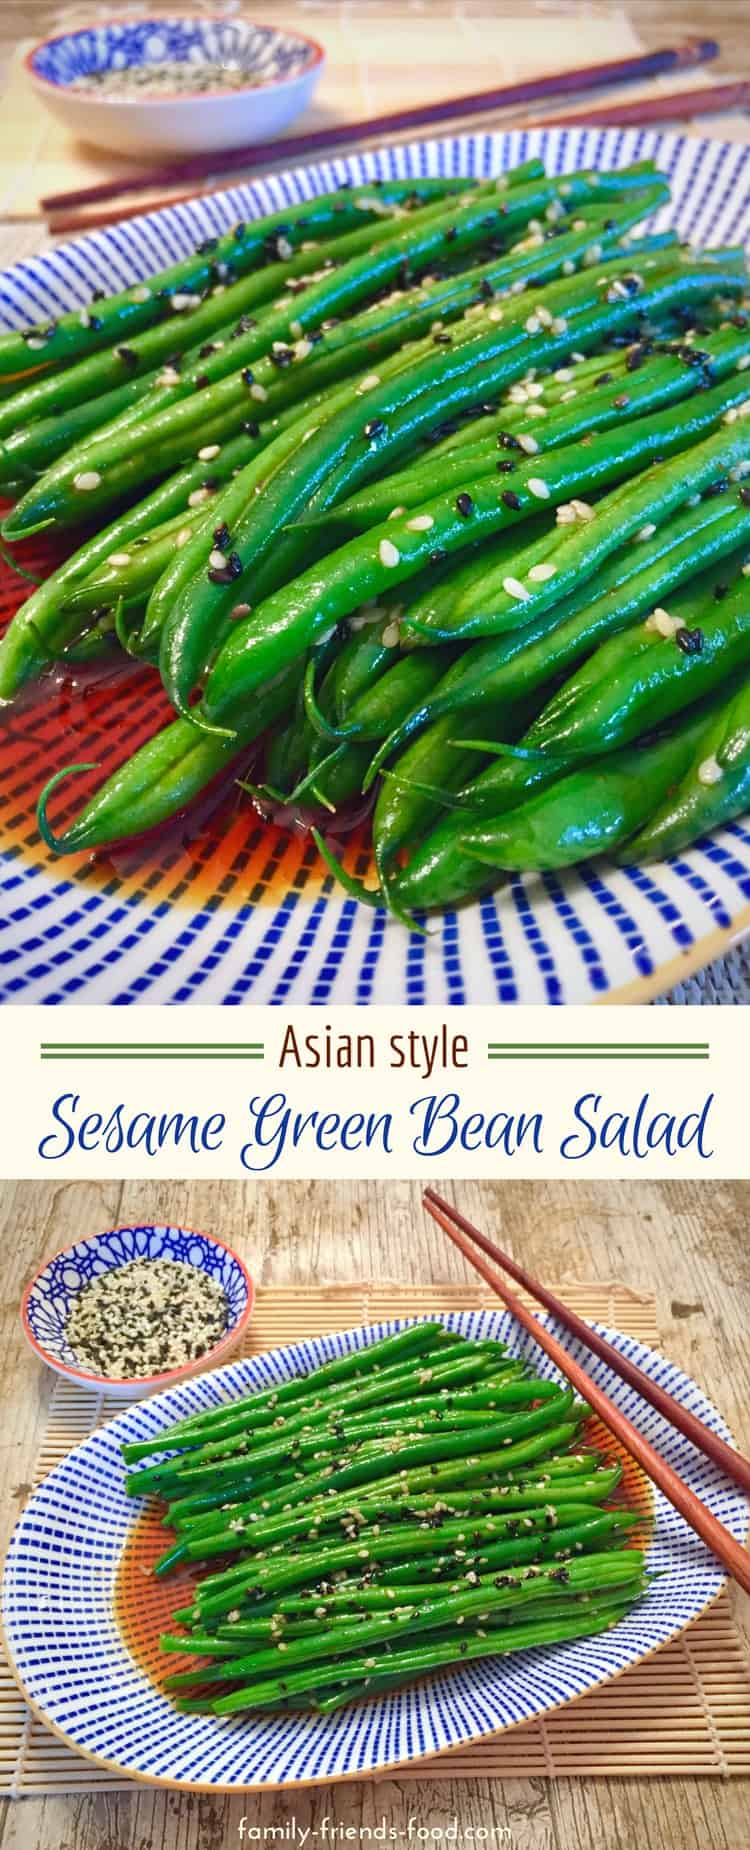 Crunchy sesame seeds cling to crisp-tender green beans, in a sweet, spicy Asian-inspired dressing. A simple and delicious salad, packed with vitamins and minerals. #parve #salad